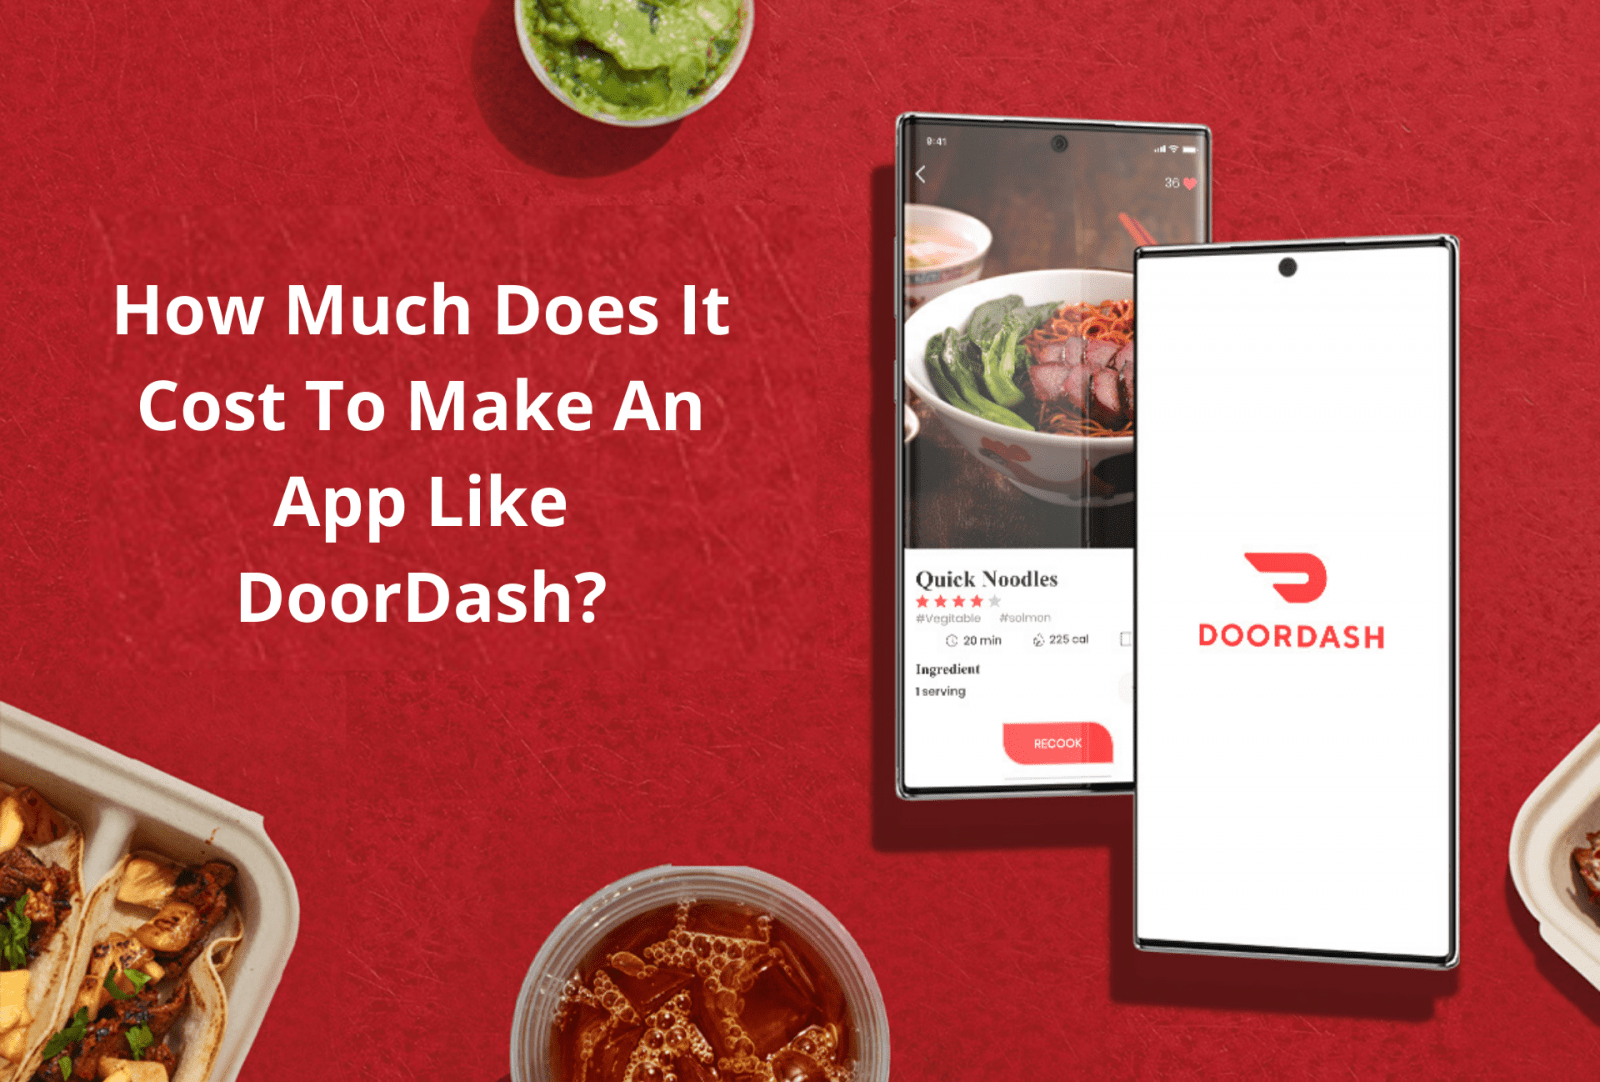 How Much Does It Cost To Make An App like DoorDash?